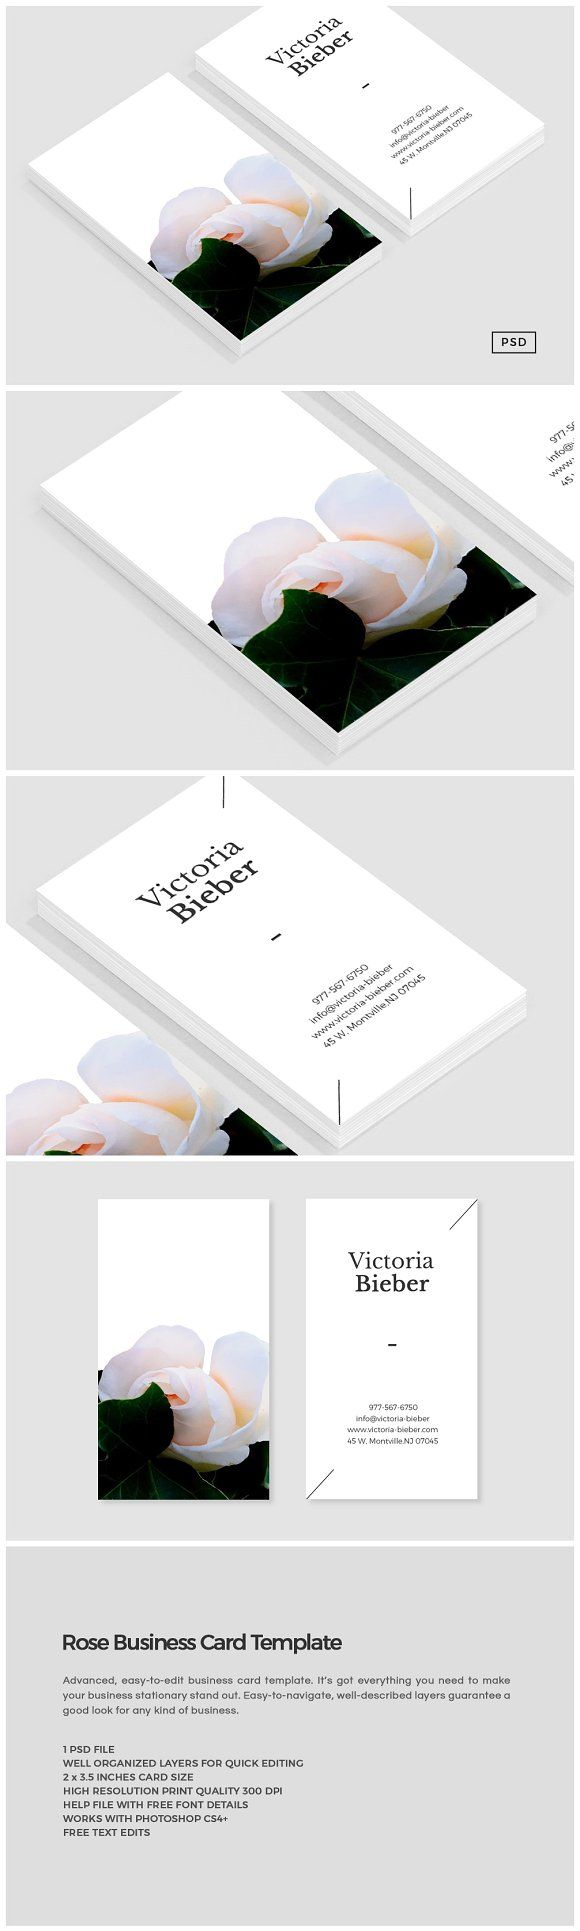 891 best business card template images on pinterest business card rose business card template templates introducing our rose business card template perfect for use in reheart Image collections